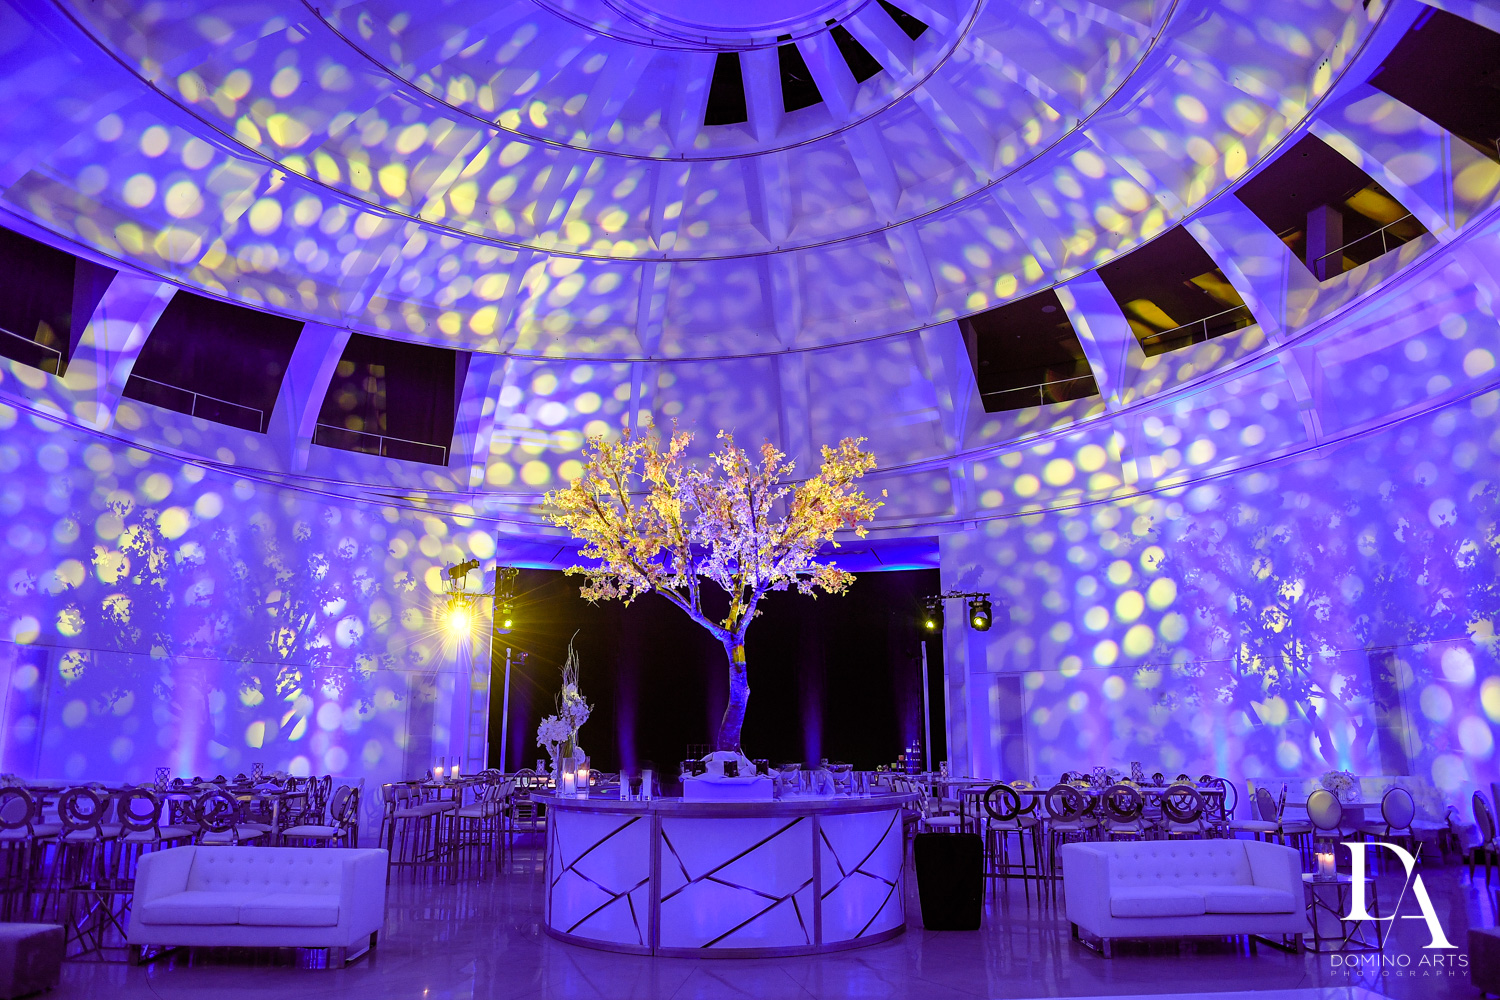 Luxury wedding décor at Faena Hotel Miami Beach